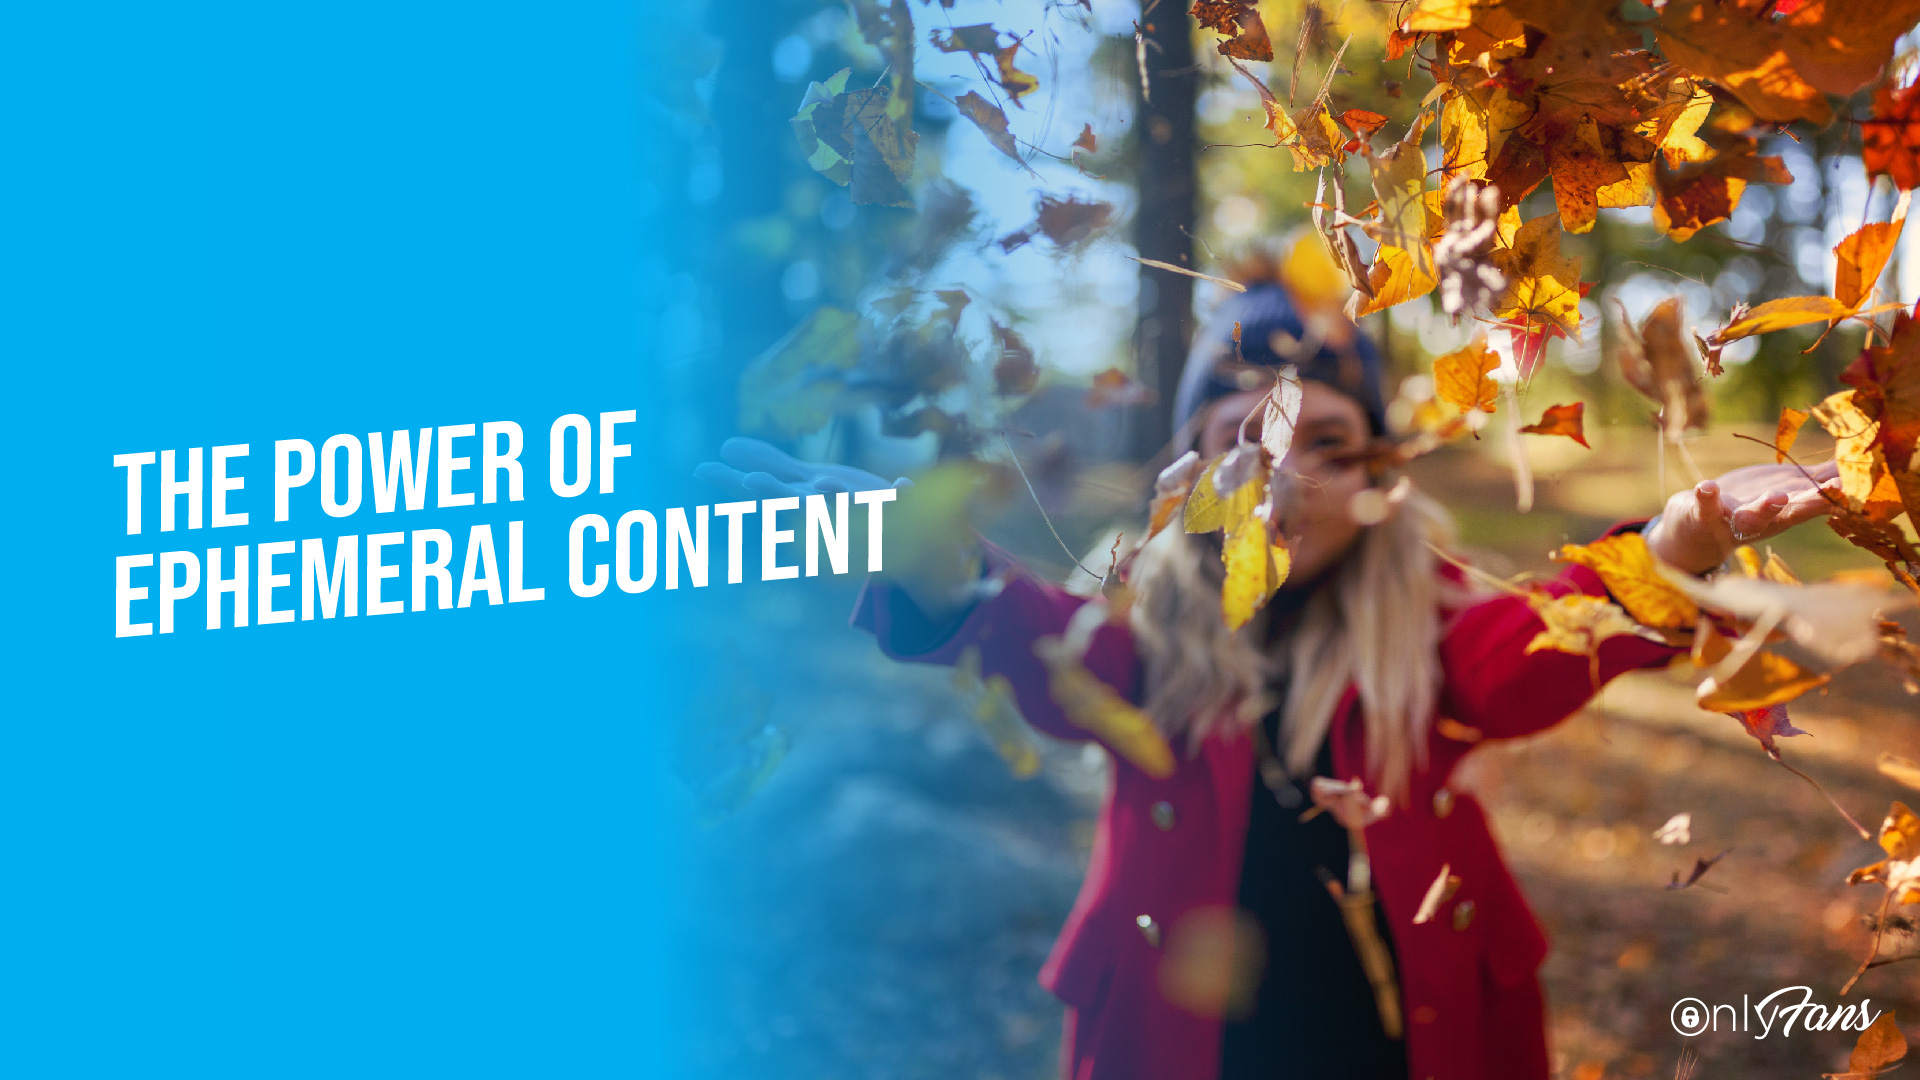 The Power of Ephemeral Content